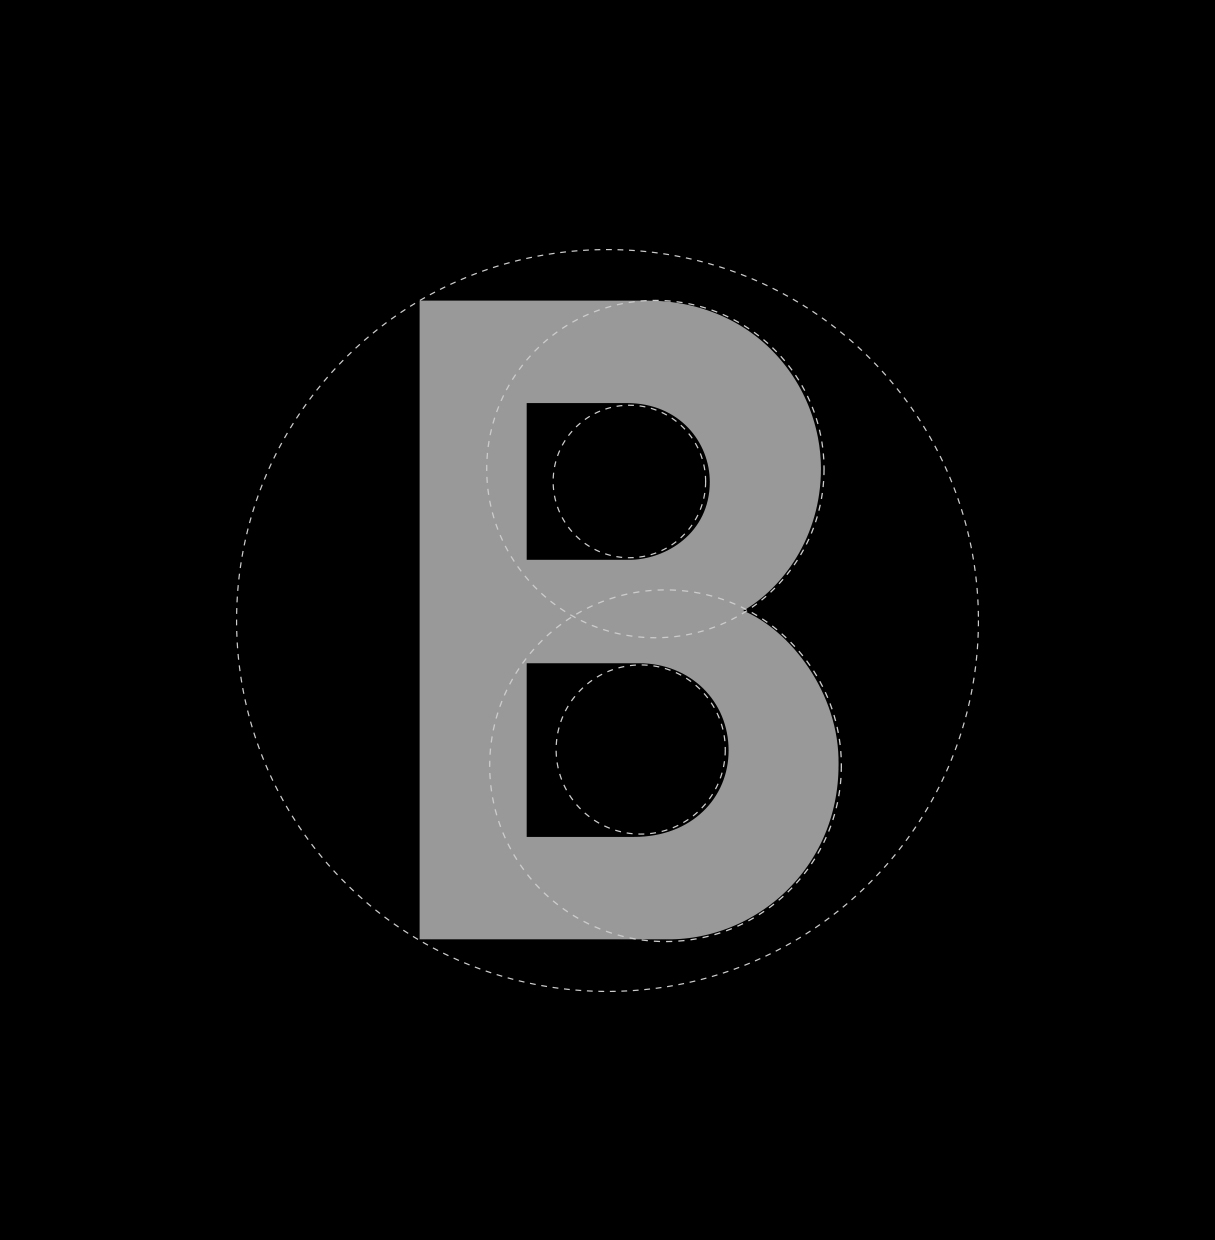 Construction of B in logo